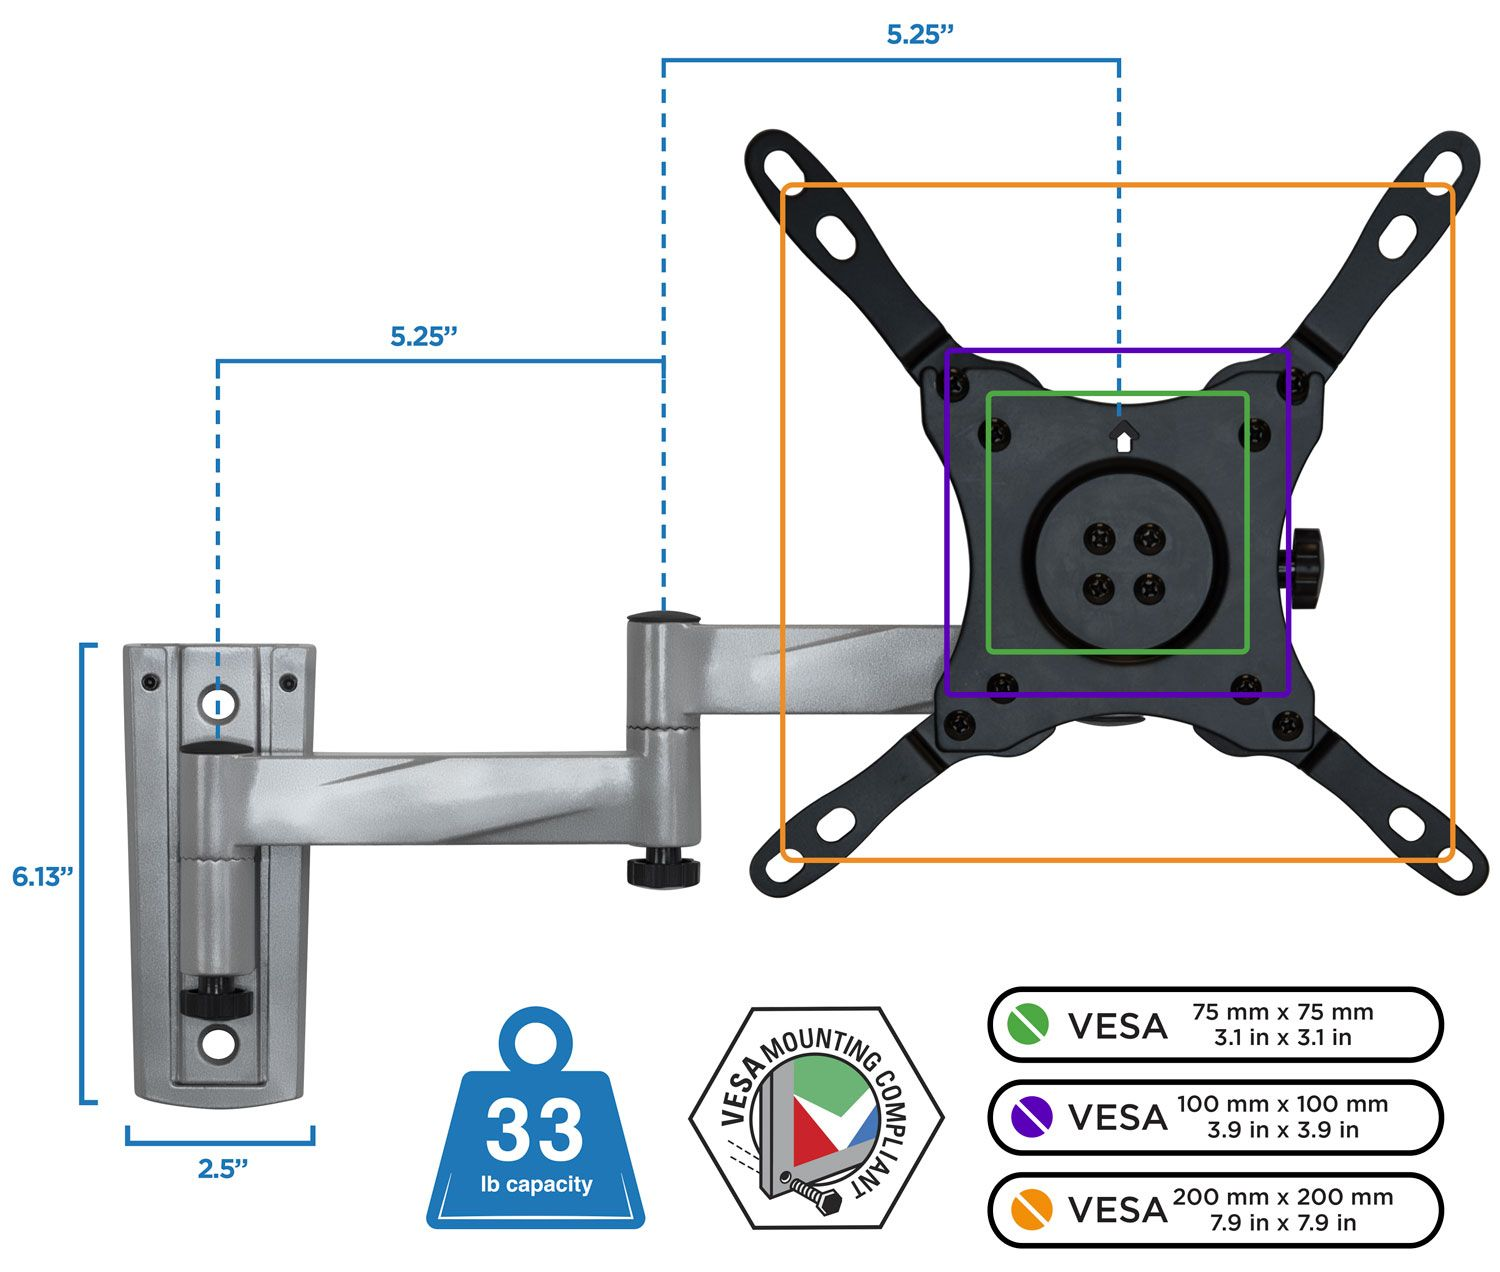 Mount It Rv Swivel Tv Mount Specifically Rv Or Mobile Home Use Fits 23 42 Inch Tvs Walmart Com Wall Mounted Tv Tv Wall Tv Wall Mount Designs